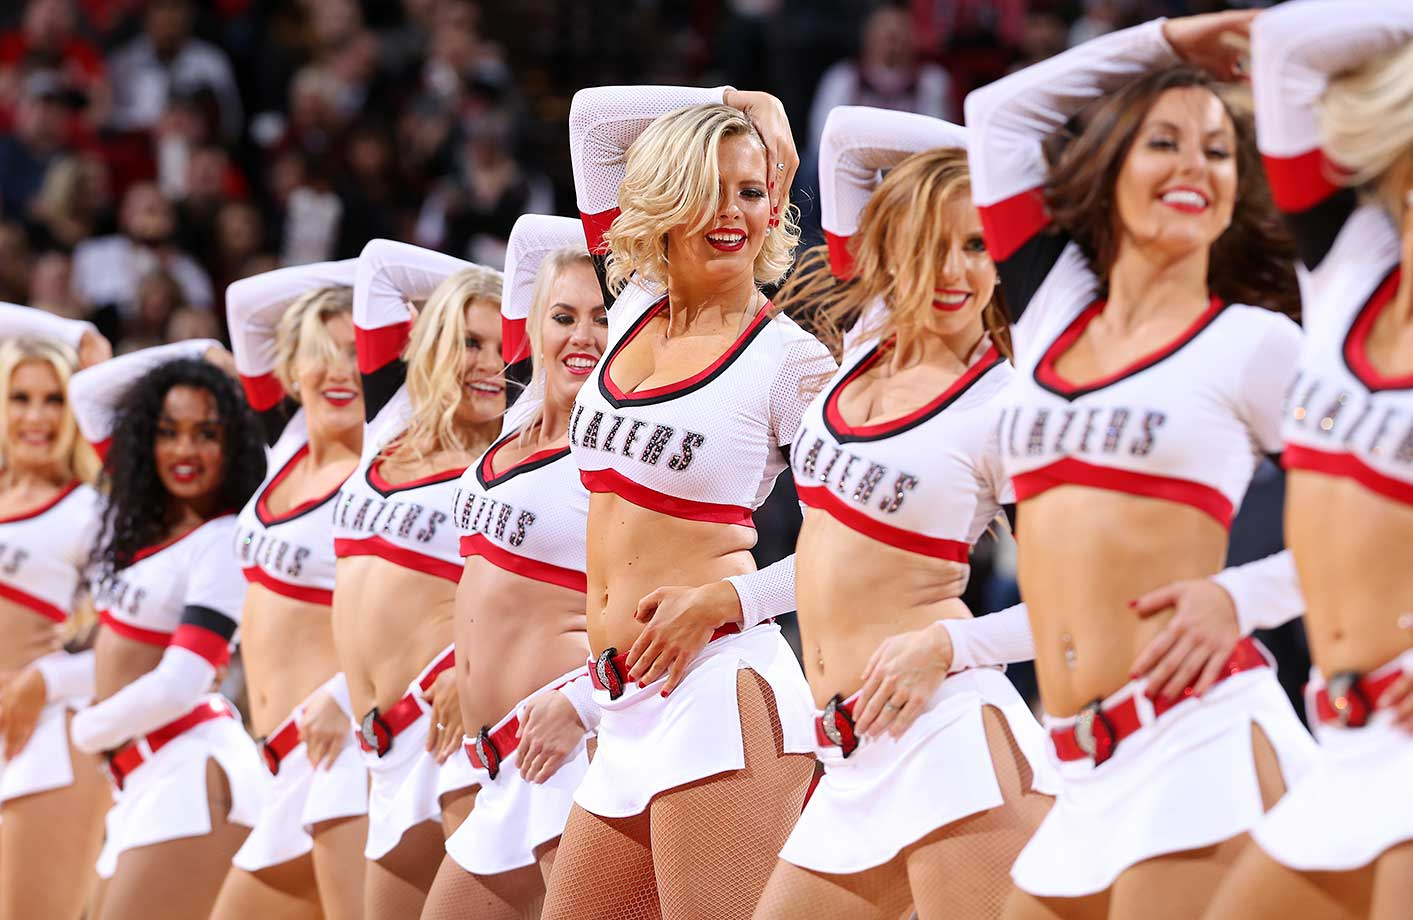 The Portland Trail Blazers dancers perform during the game against the Charlotte Hornets at Moda Center in Portland.